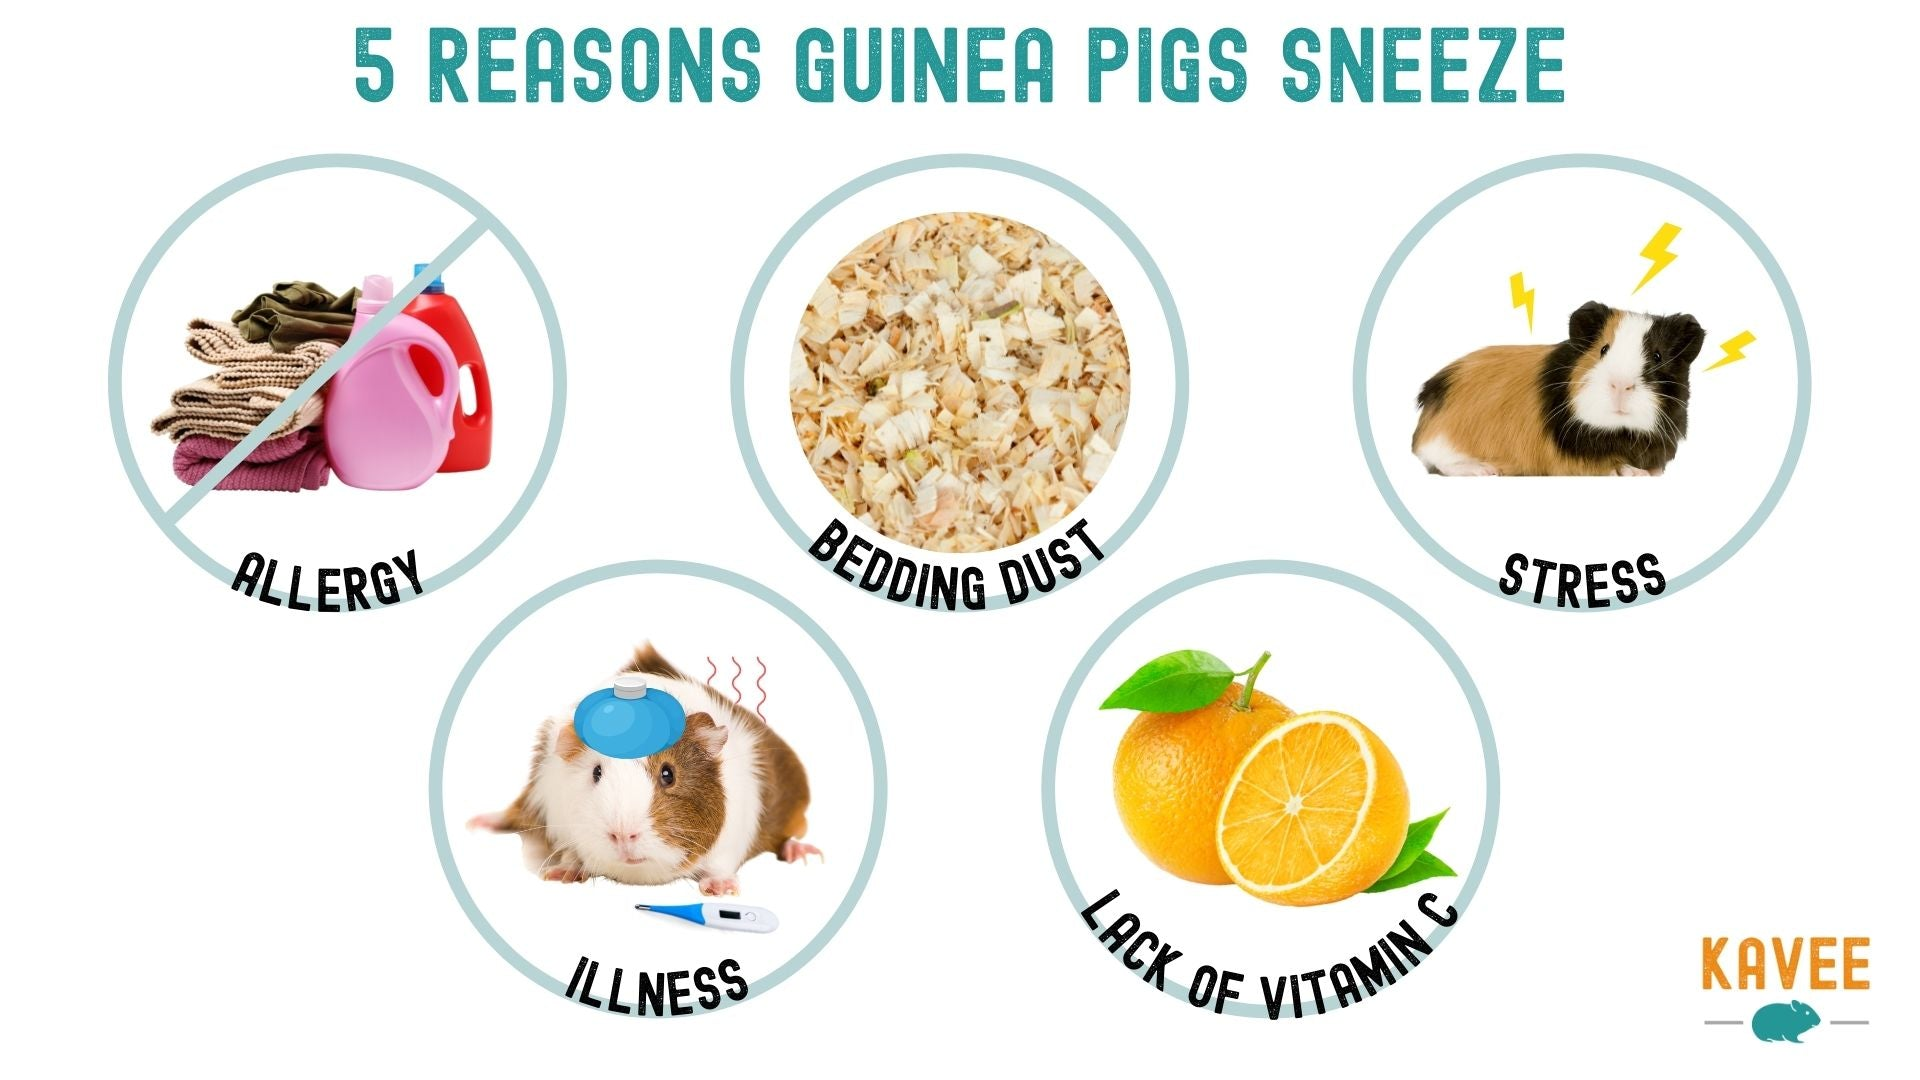 guinea pigs can sneeze because of allergies bedding illness stress dust stress illness and lack of vitamin c